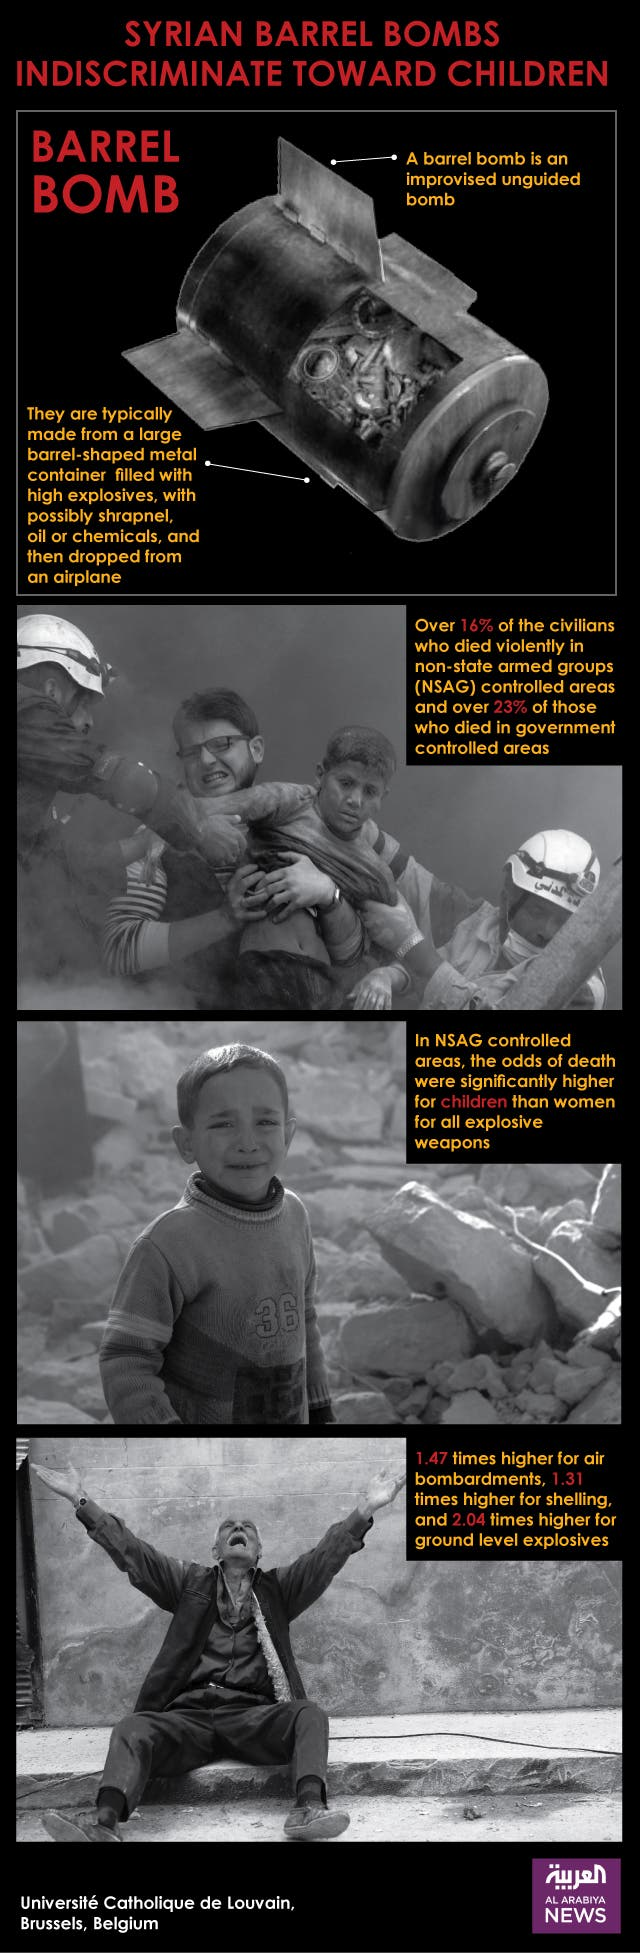 Syrian barrel bombs indiscriminate toward children